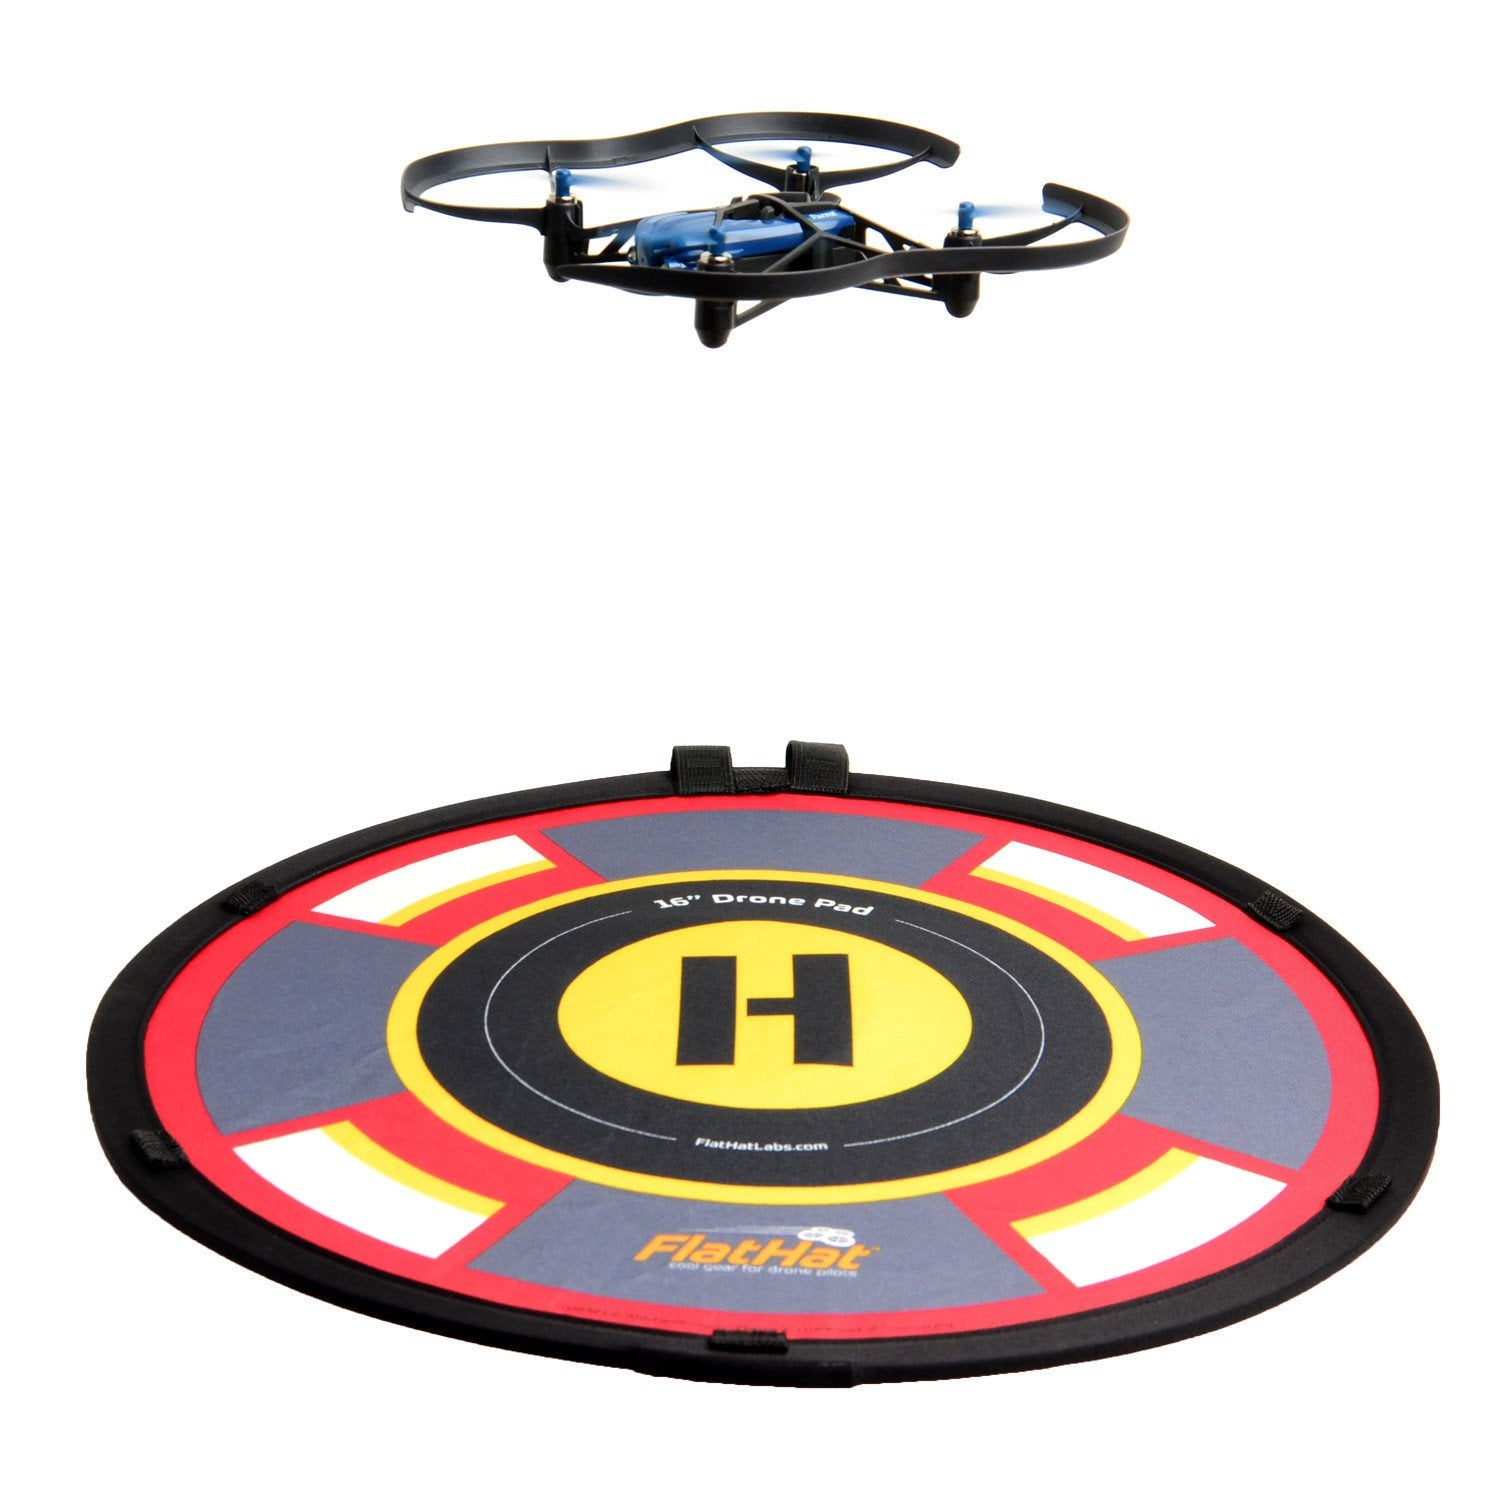 "FlatHat 16"" (40cm) Collapsible Drone Pad - Red Gold"